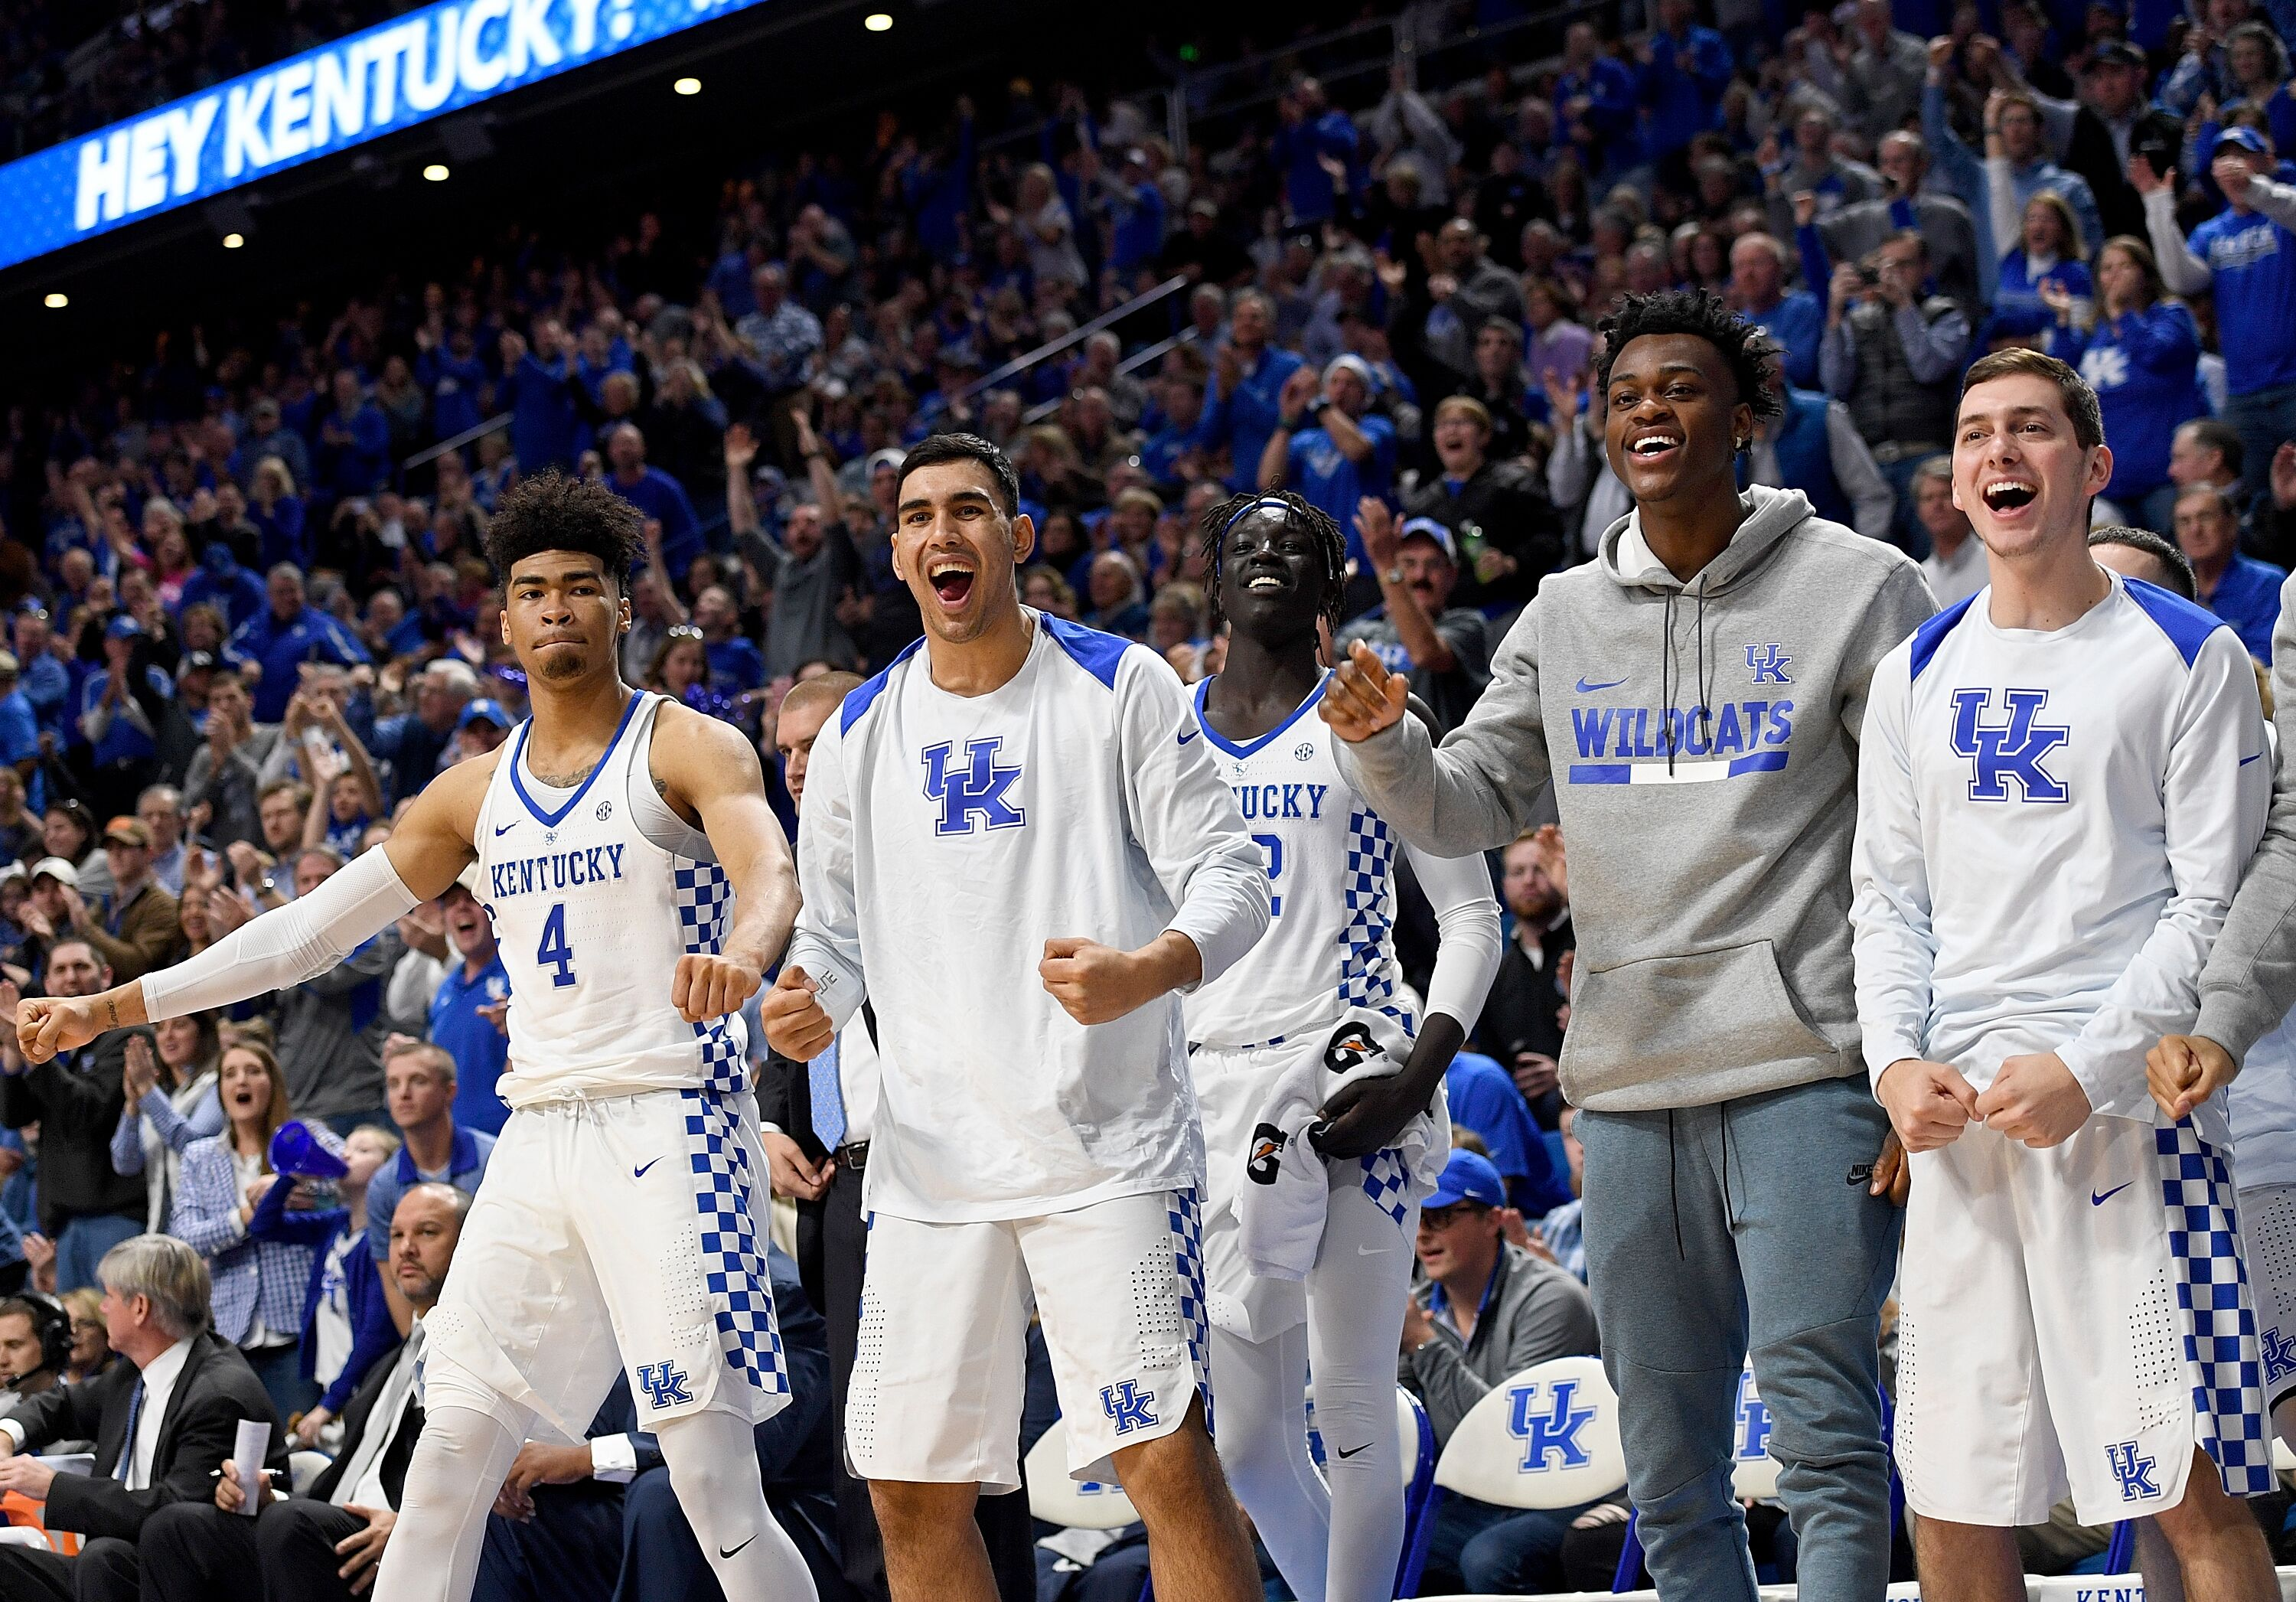 Kentucky Basketball Our First Look At The New Wildcats In: Kentucky Basketball: SEC Men's Basketball Tournament Seed